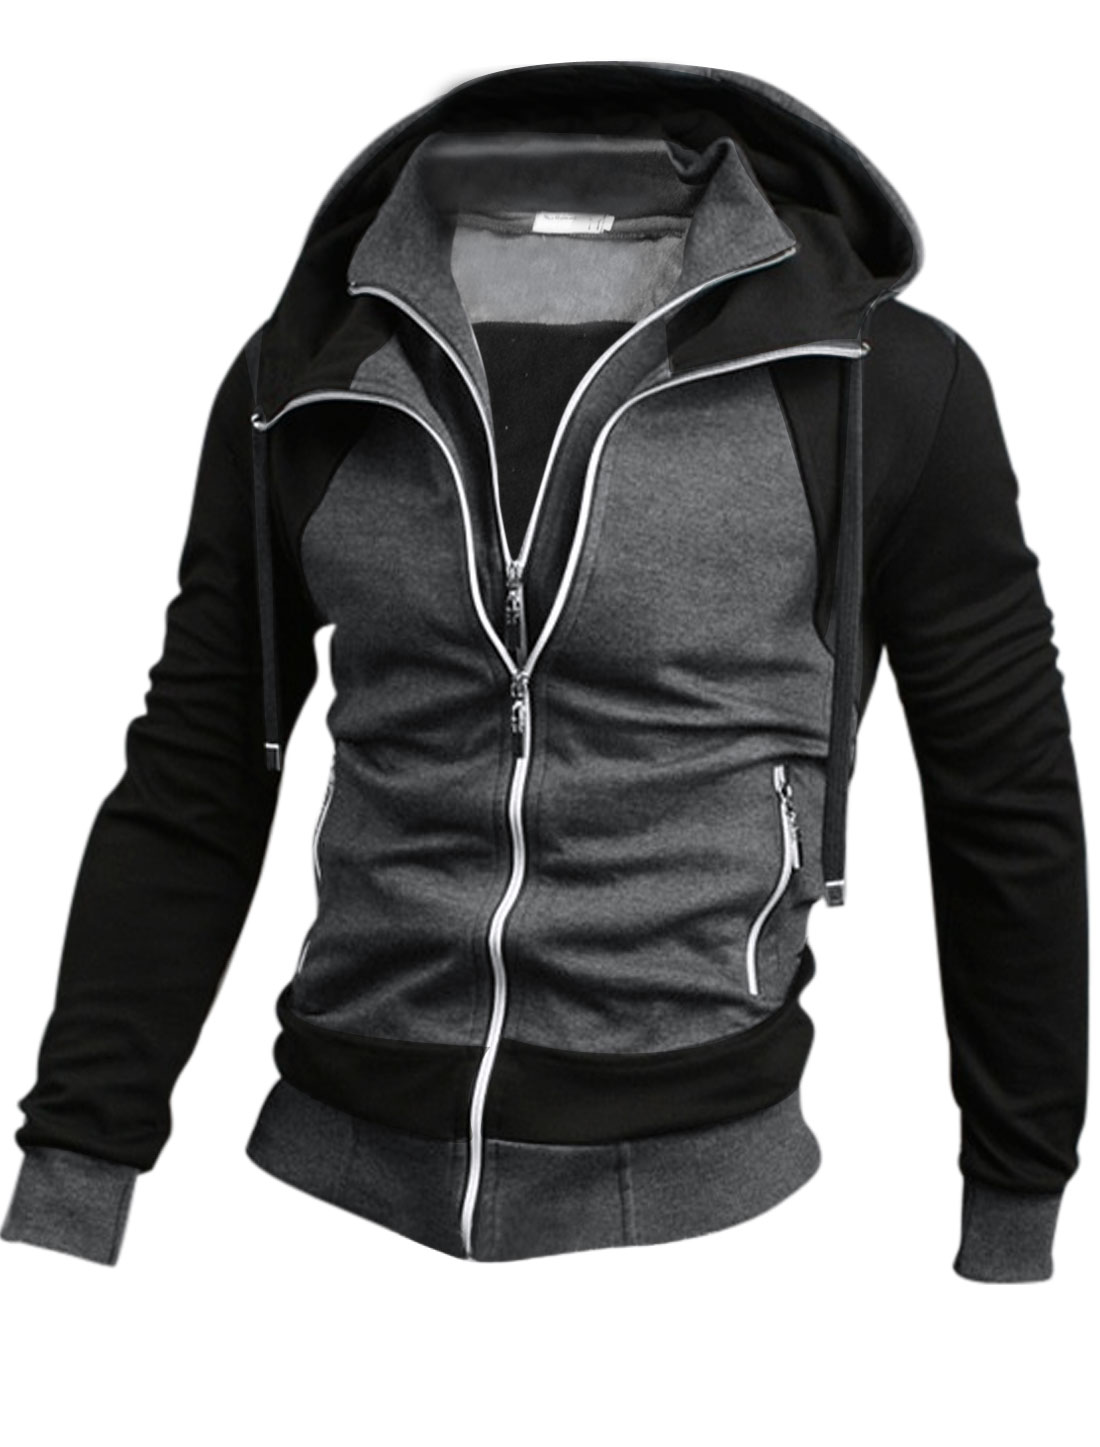 Man's Zipper Closure Stand Collar Long Sleeve Hooded Jacket Black Dark Gray M